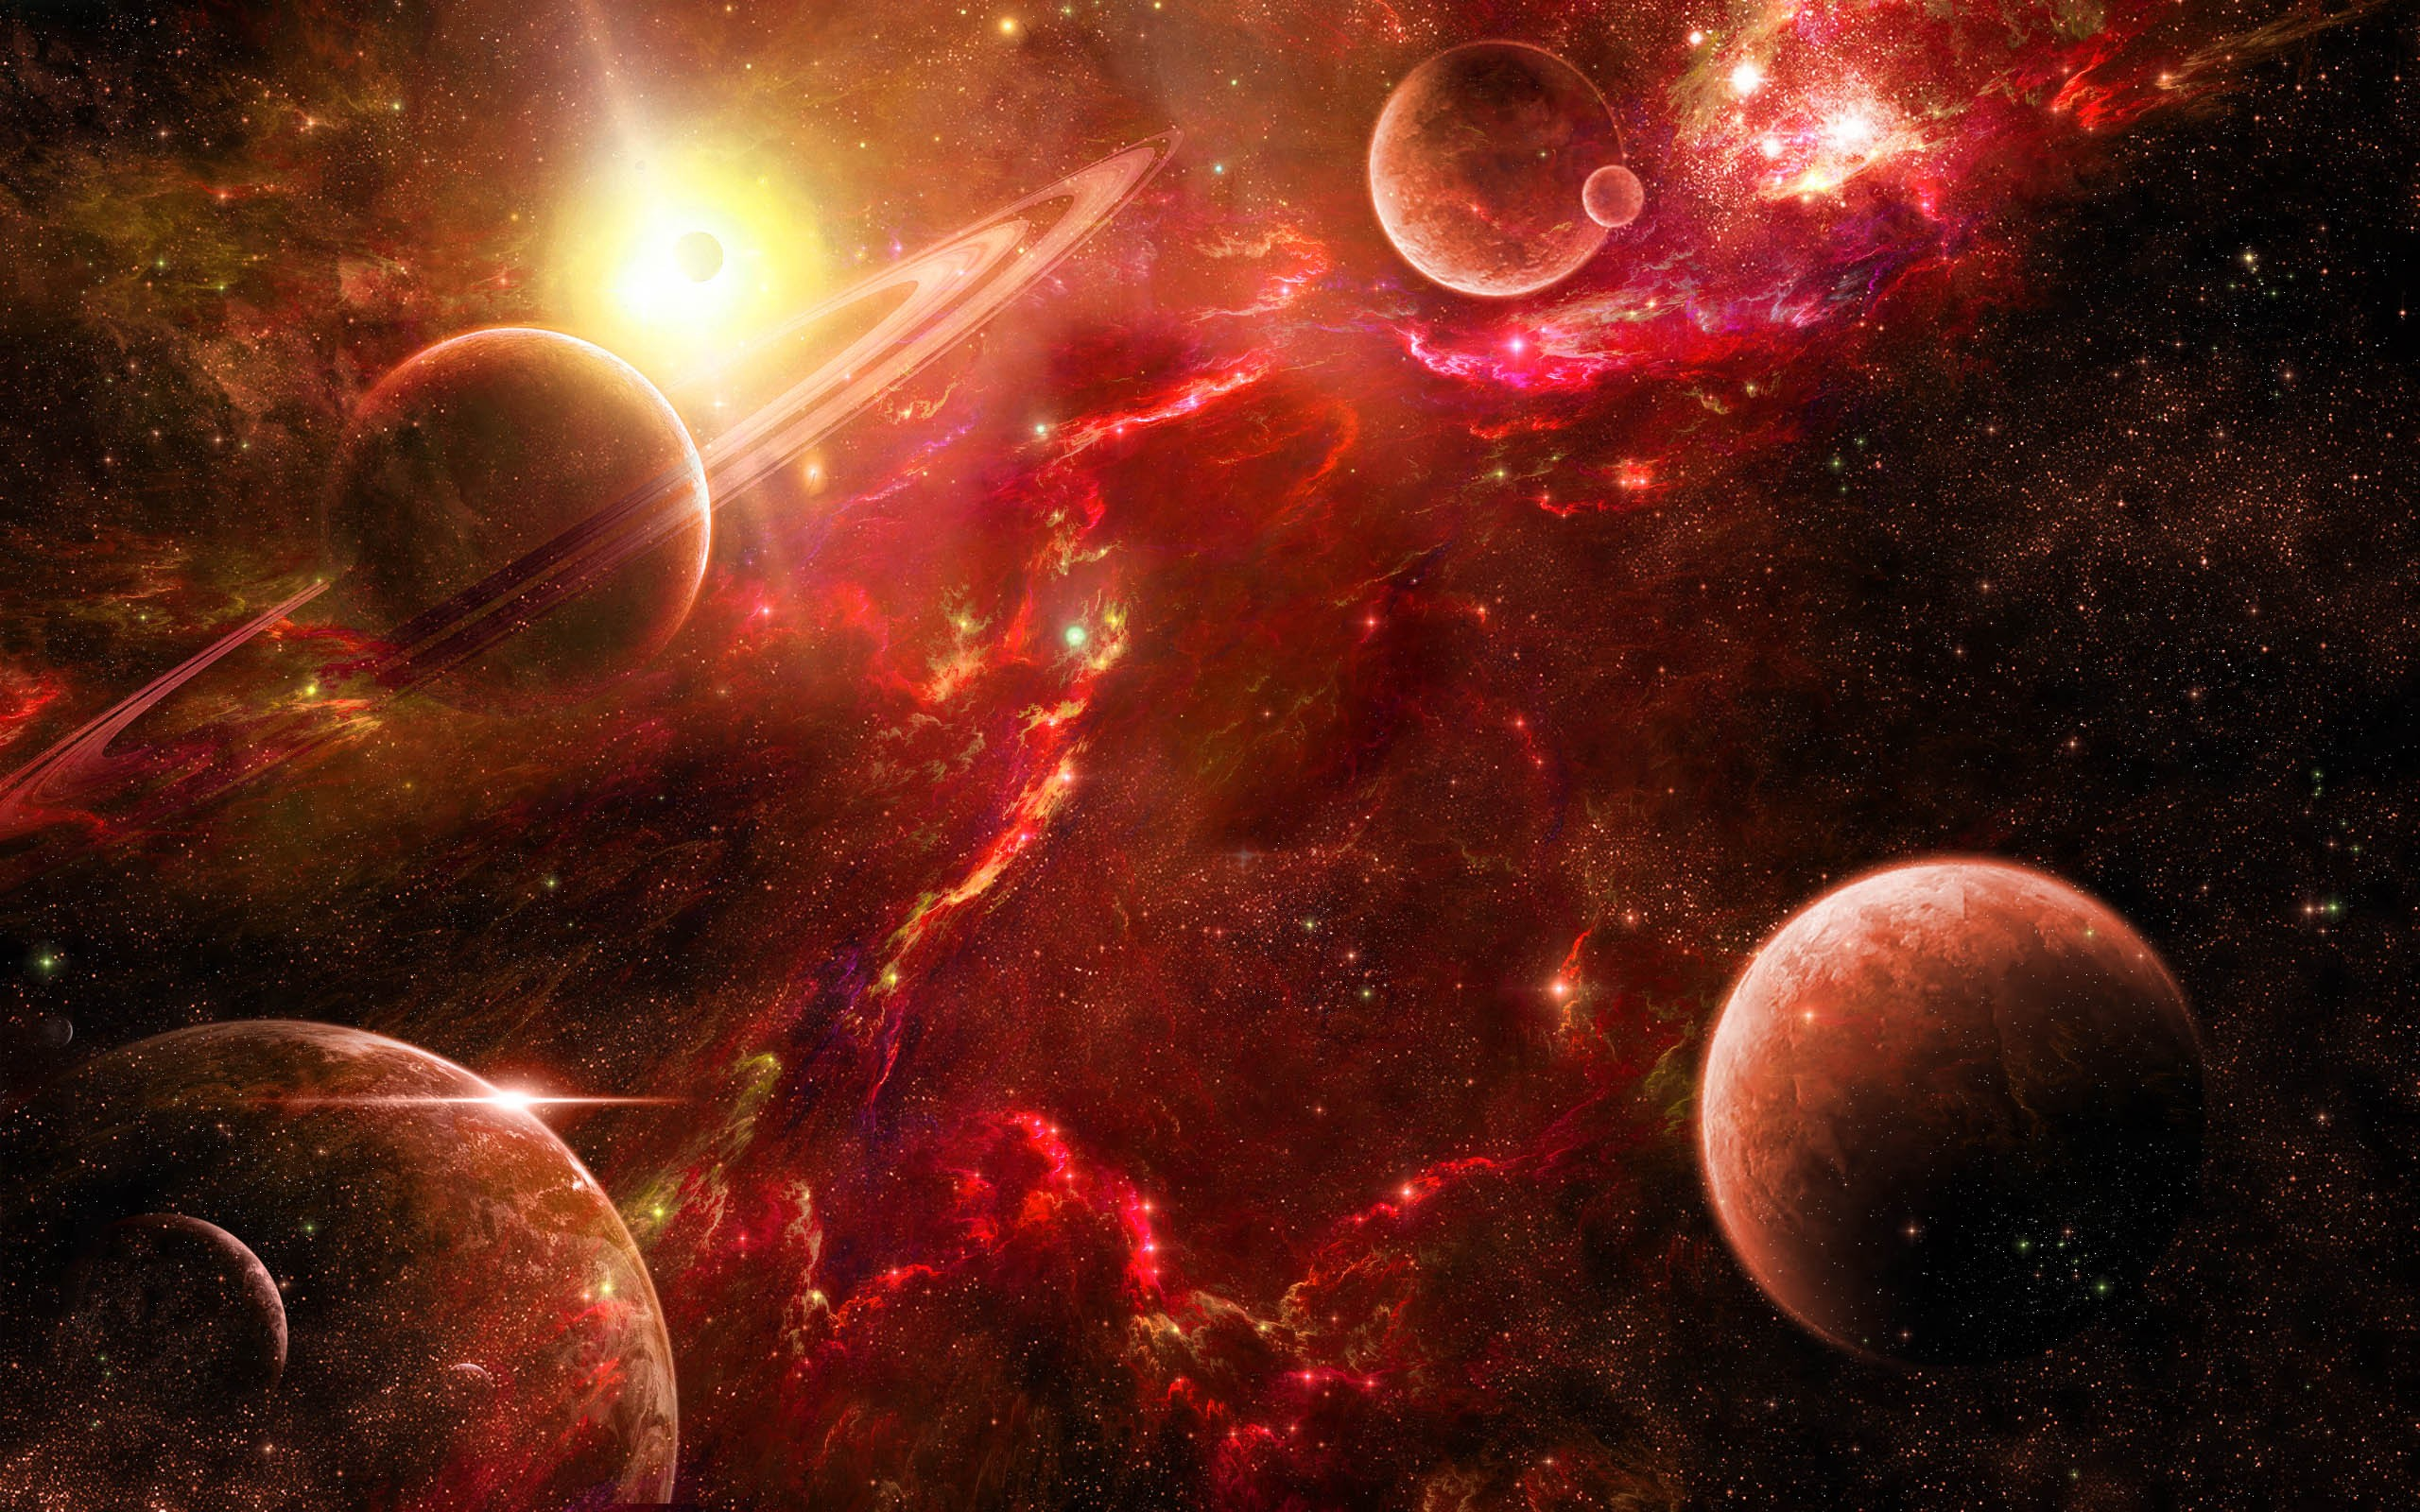 Outer Space Wallpaper 2560x1600 Outer Space Planets 2560x1600